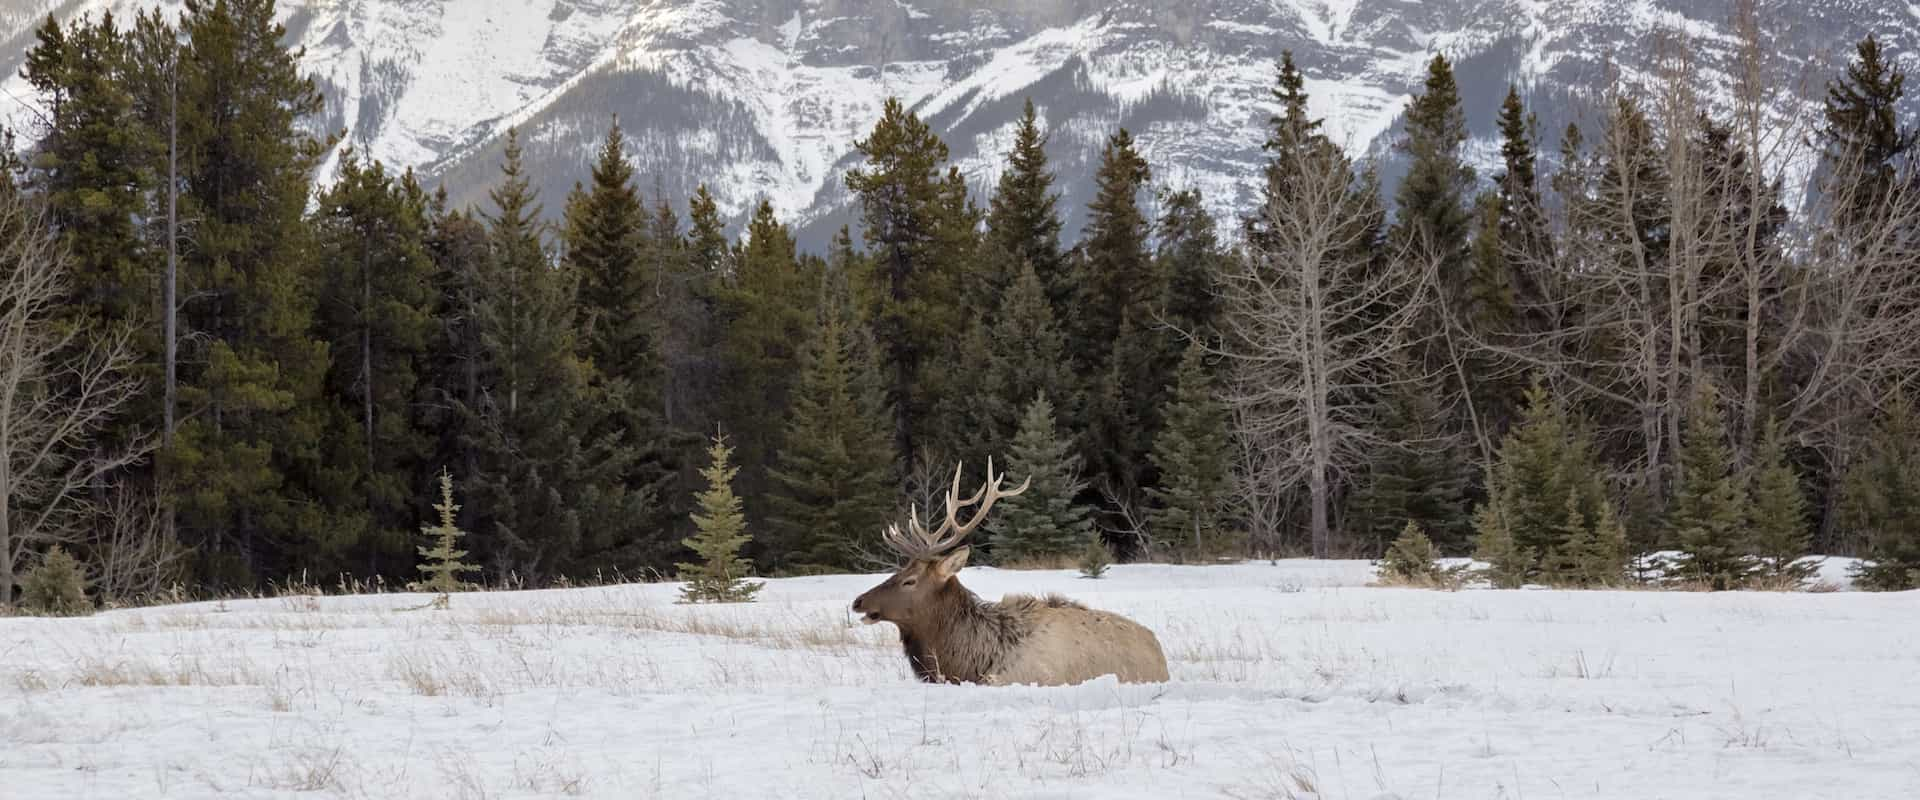 See wildlife such as elk in Banff